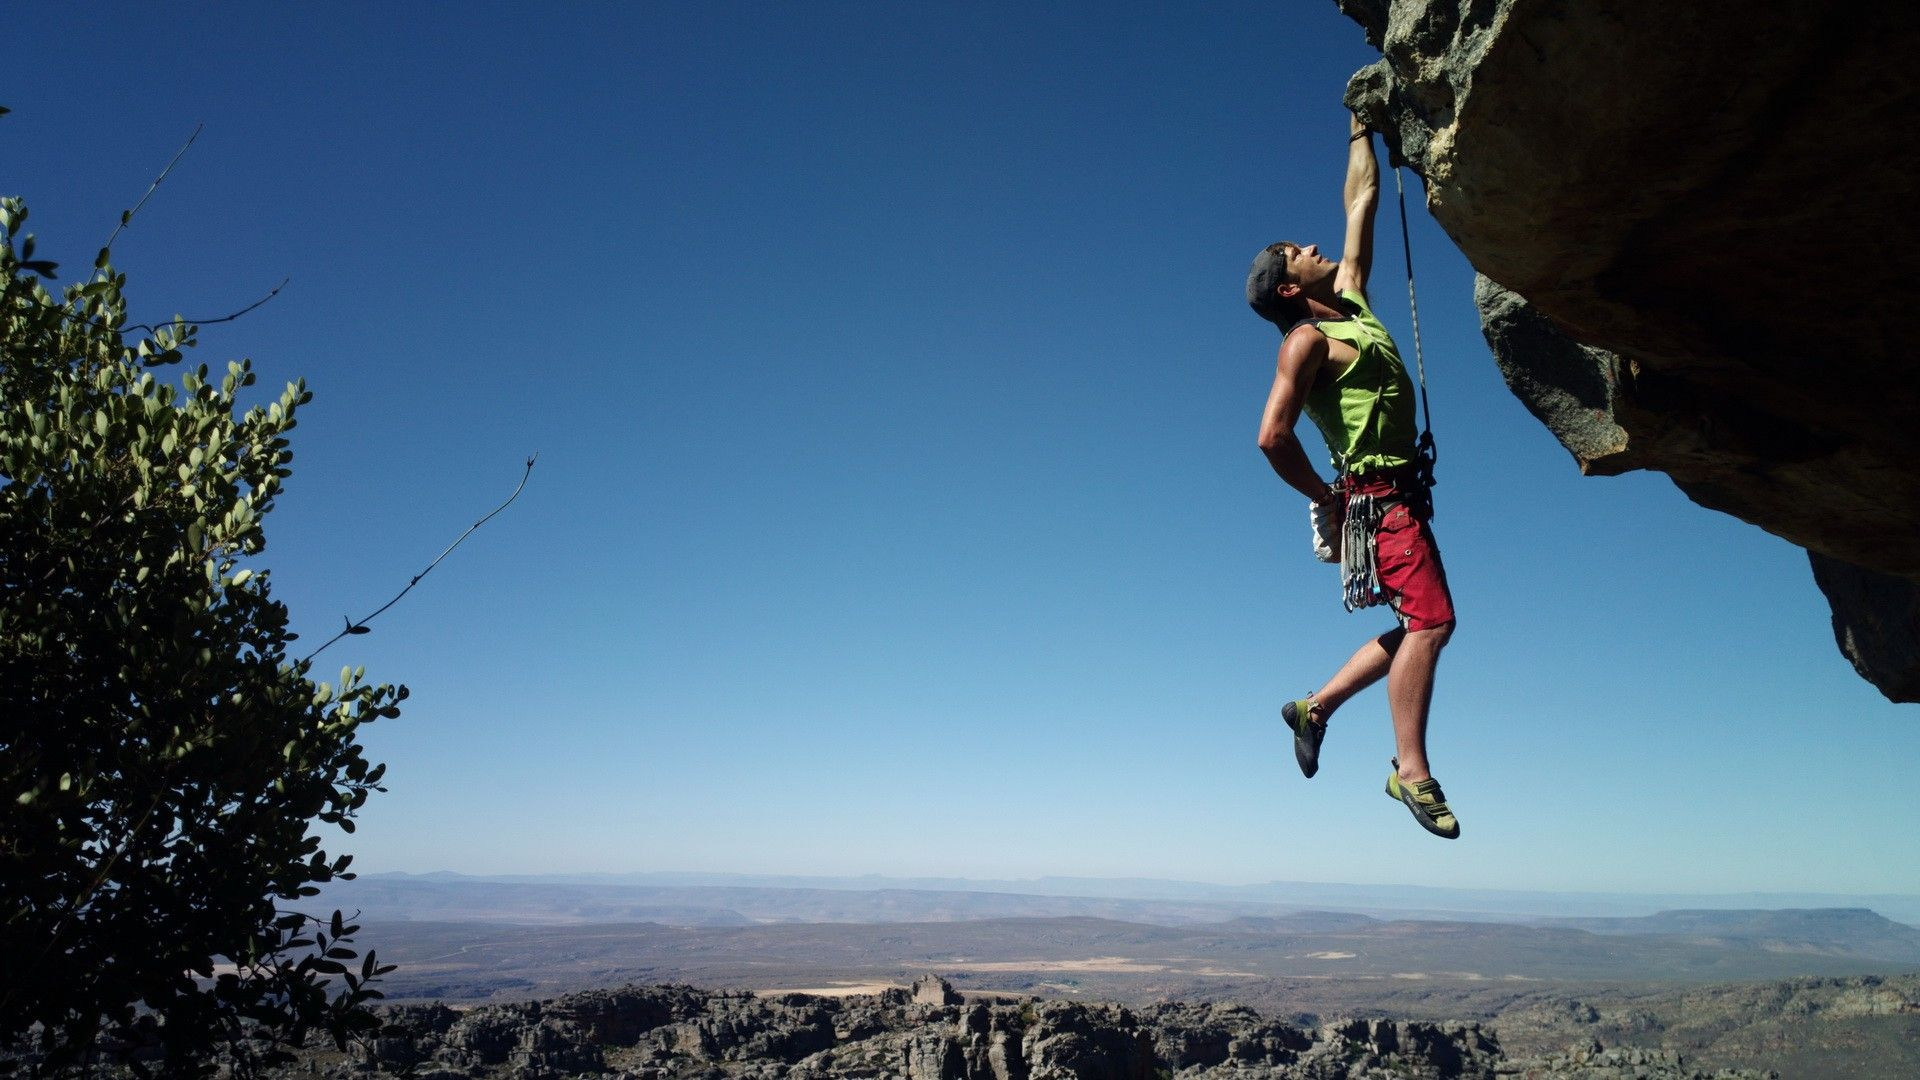 sports-climbing-wallpaper-01-sports-and-games-wallpapers-home-free-rock-climbing-wallpaper